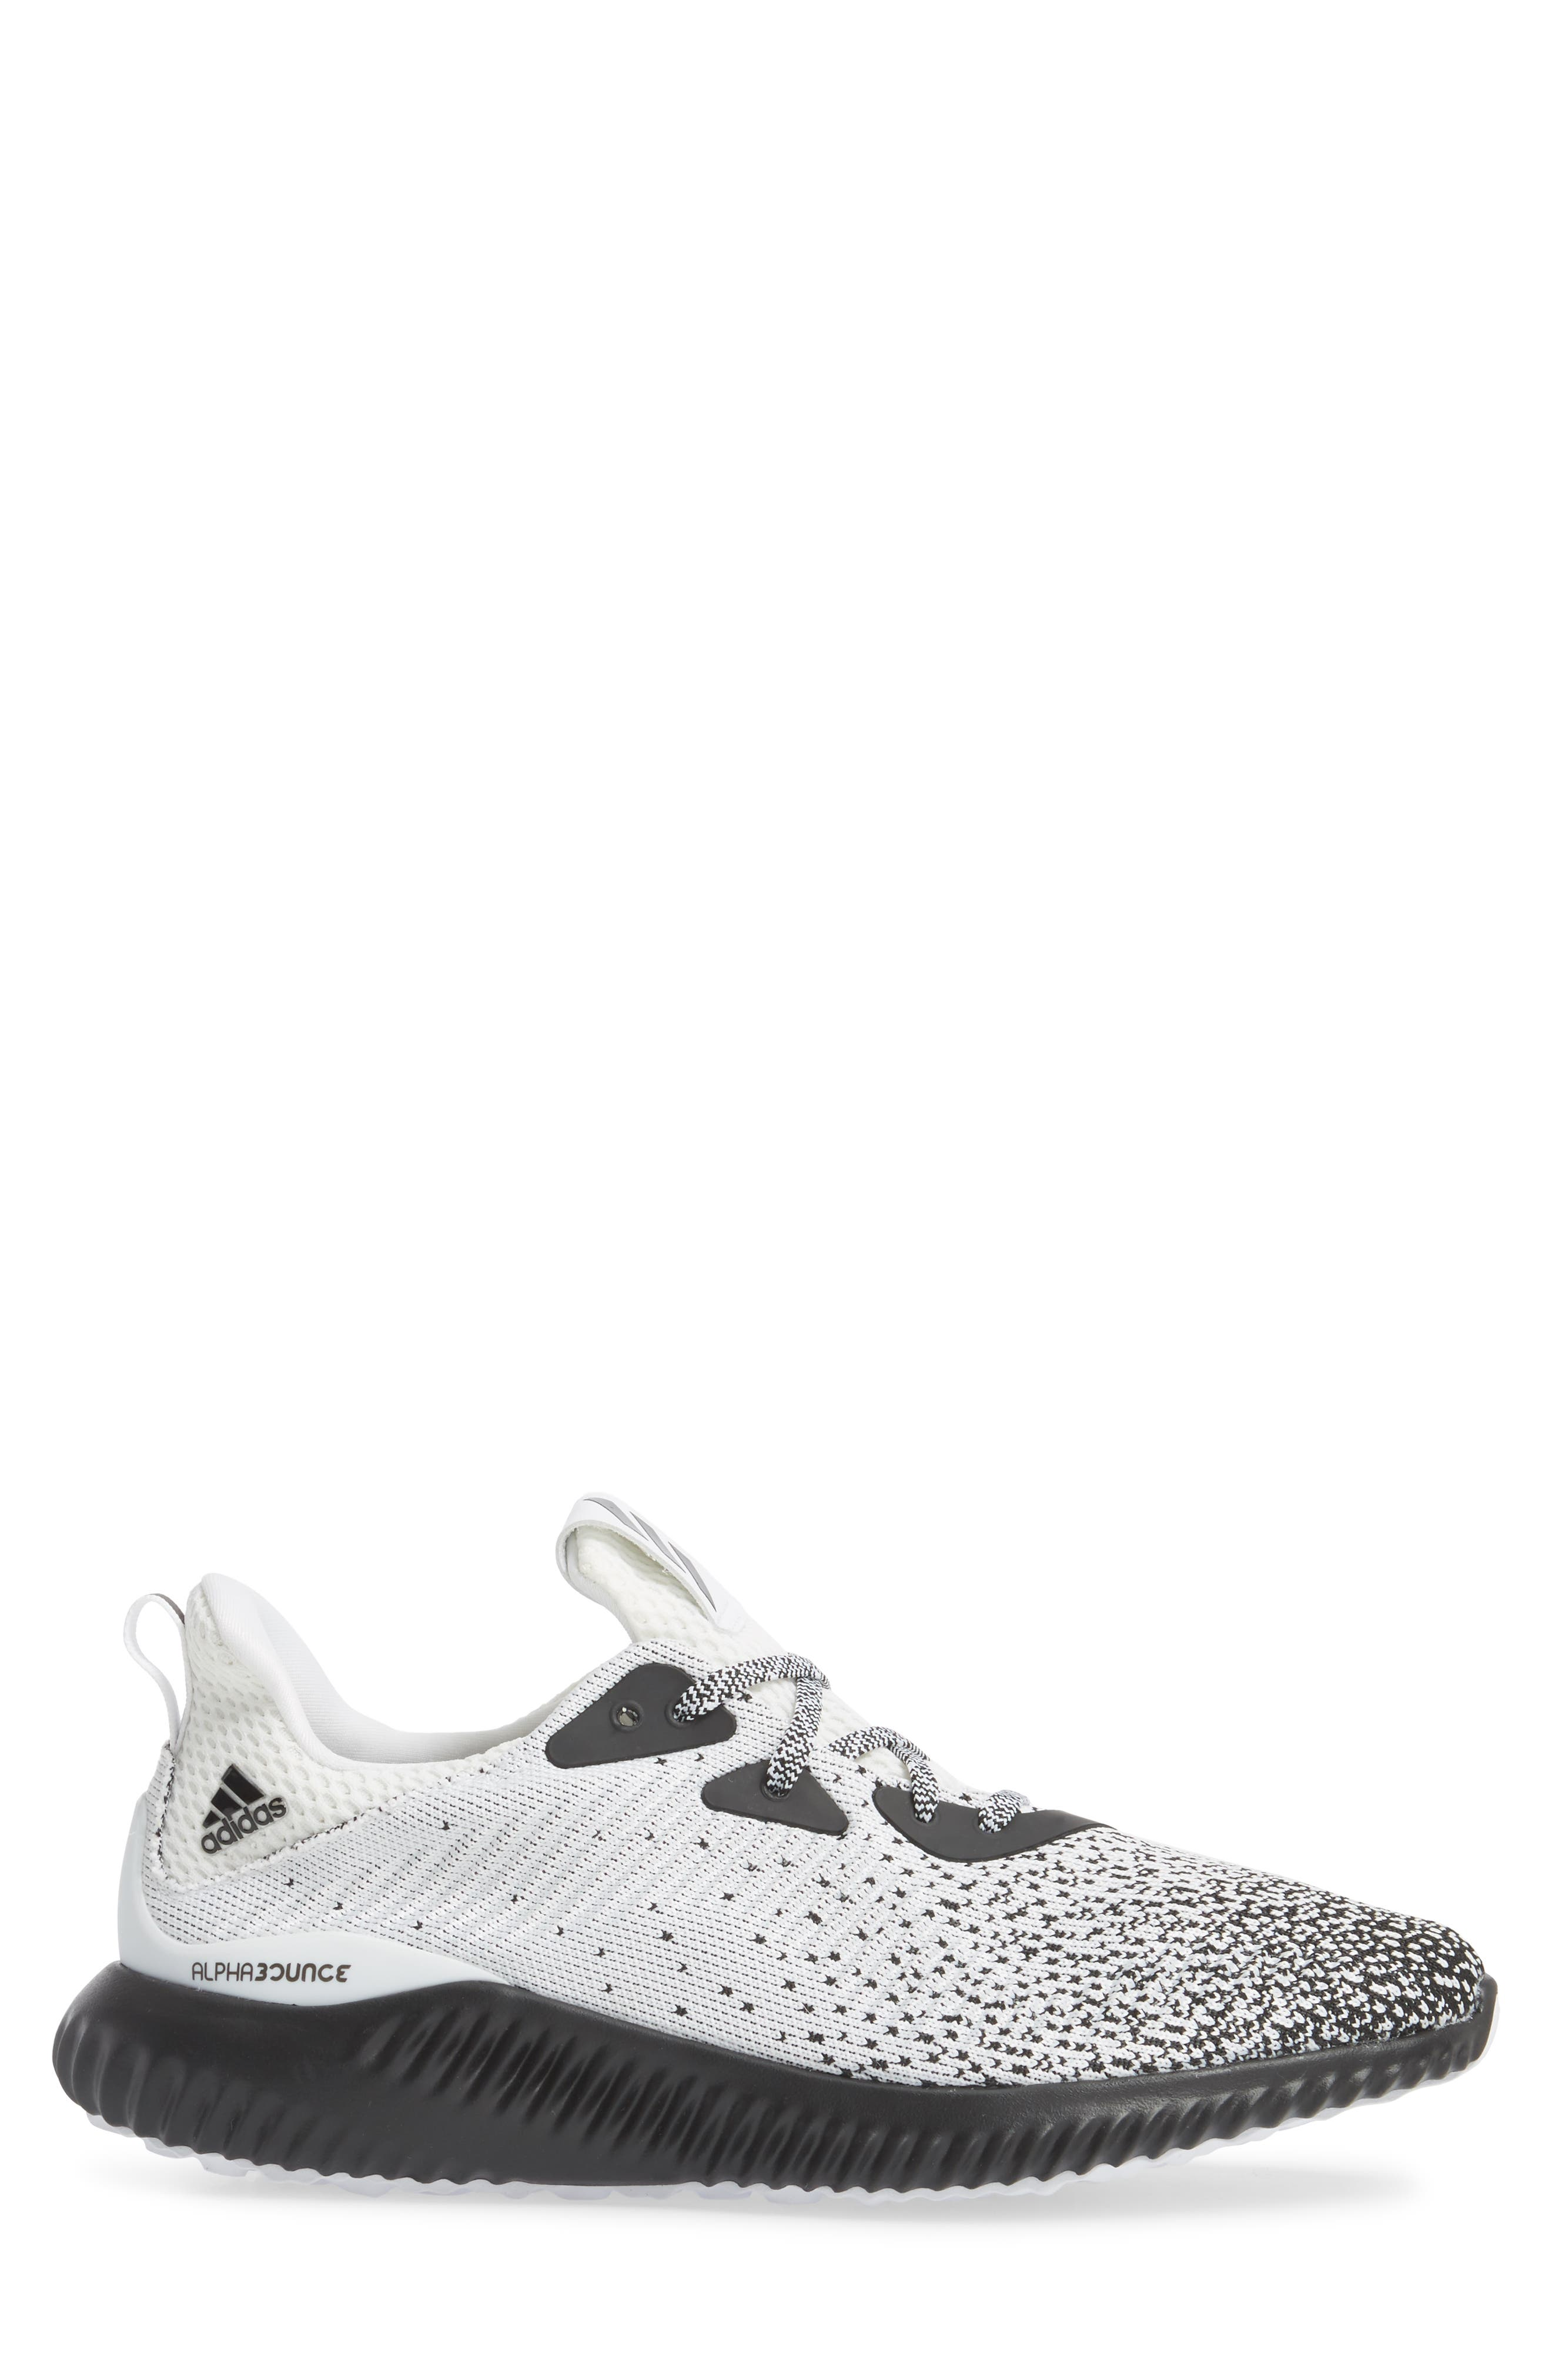 AlphaBounce CK Running Shoe,                             Alternate thumbnail 3, color,                             Core Black / White / Black